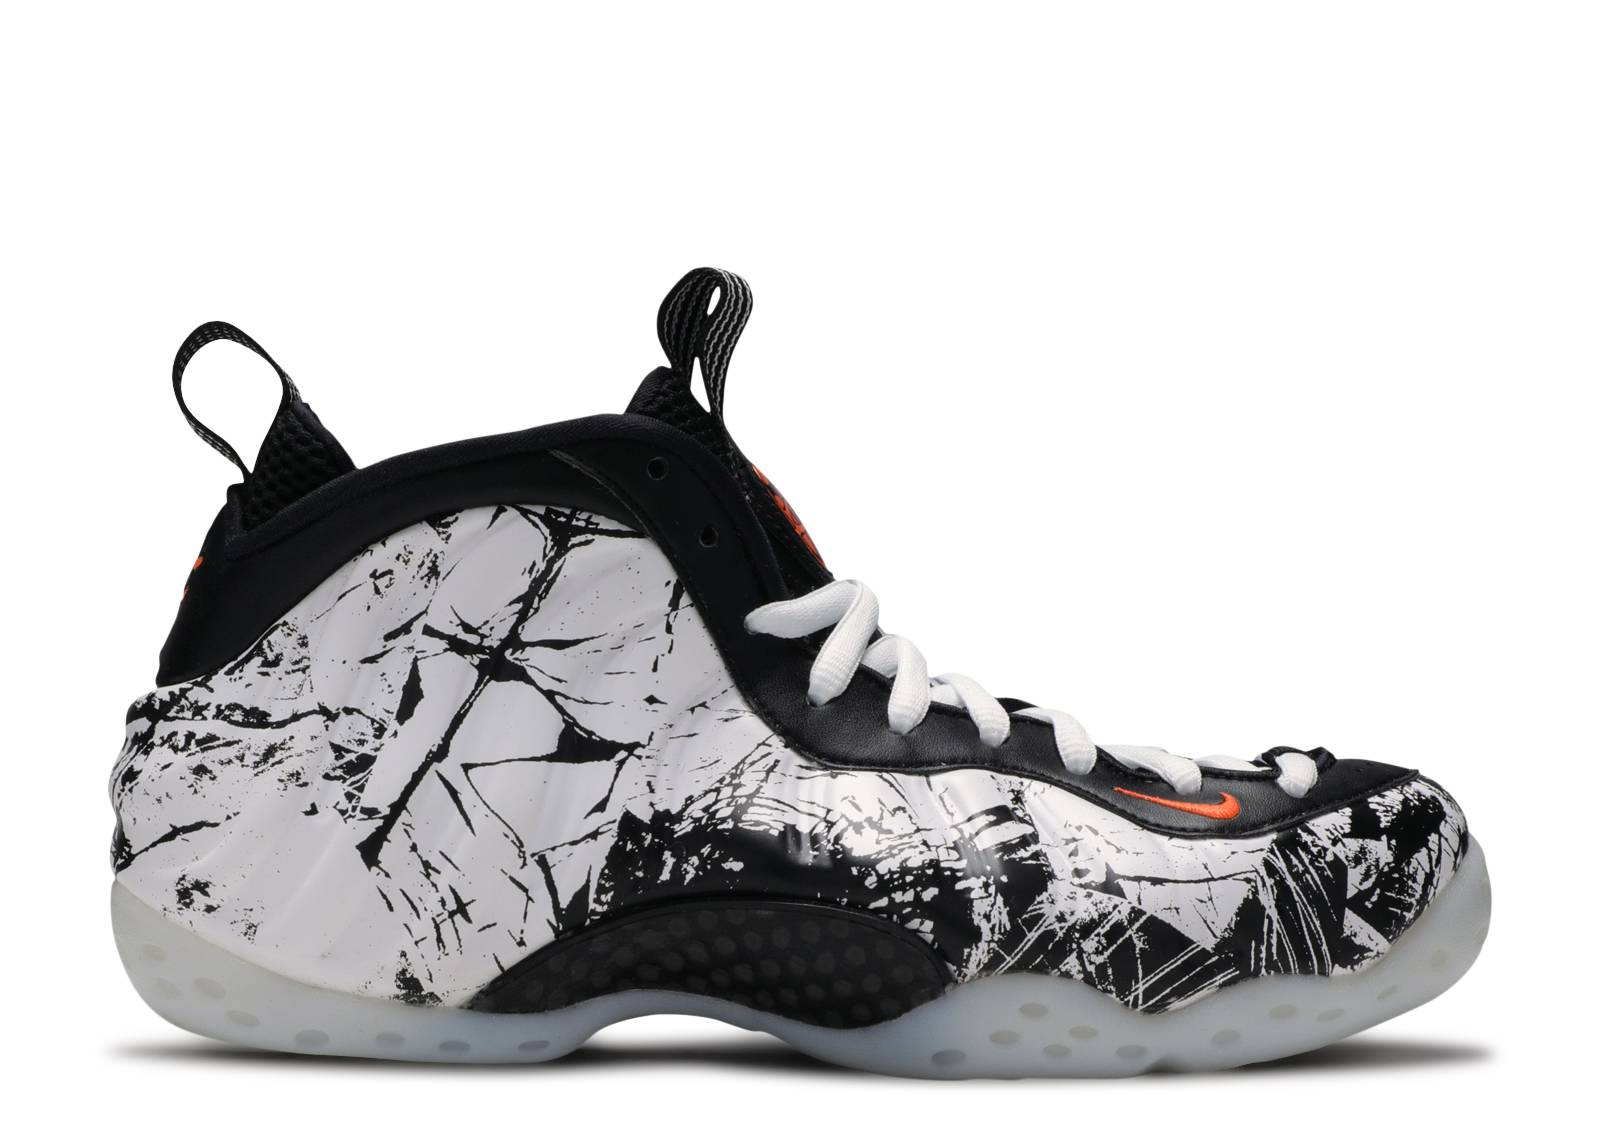 Nike Air Foamposite One Floral ShoesSize 10 SportSpyder